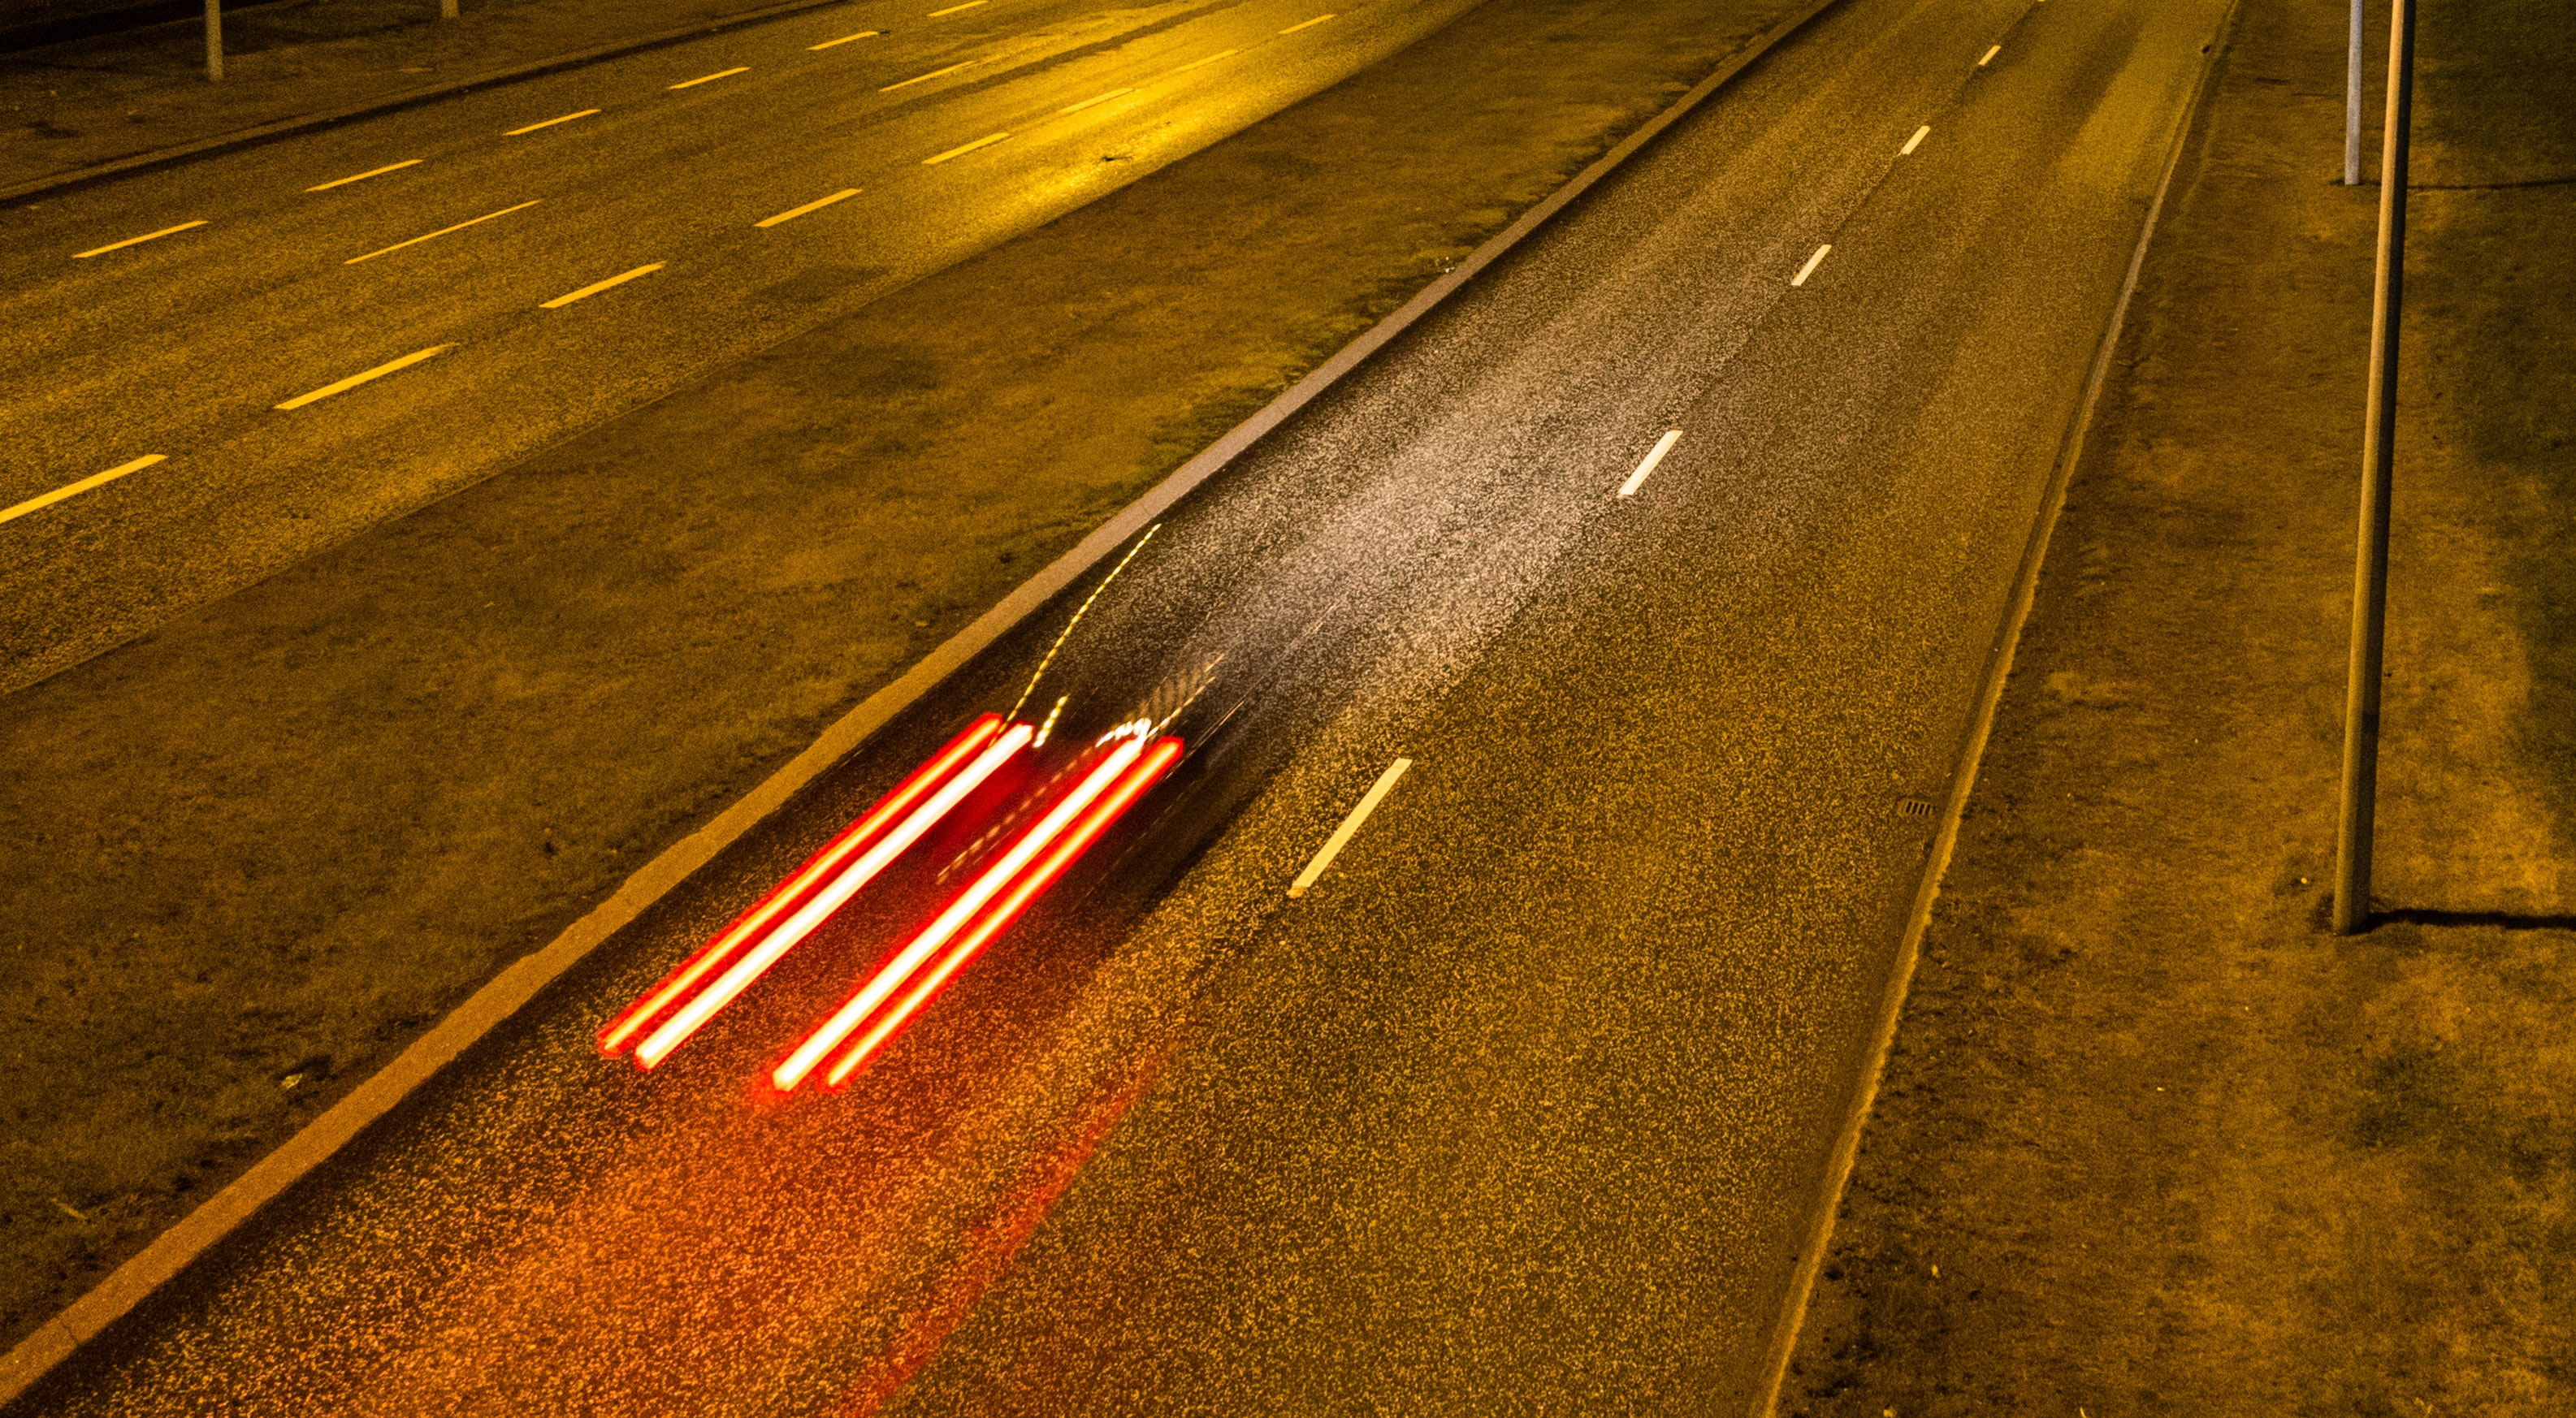 panning photo of vehicle traveling on concrete road